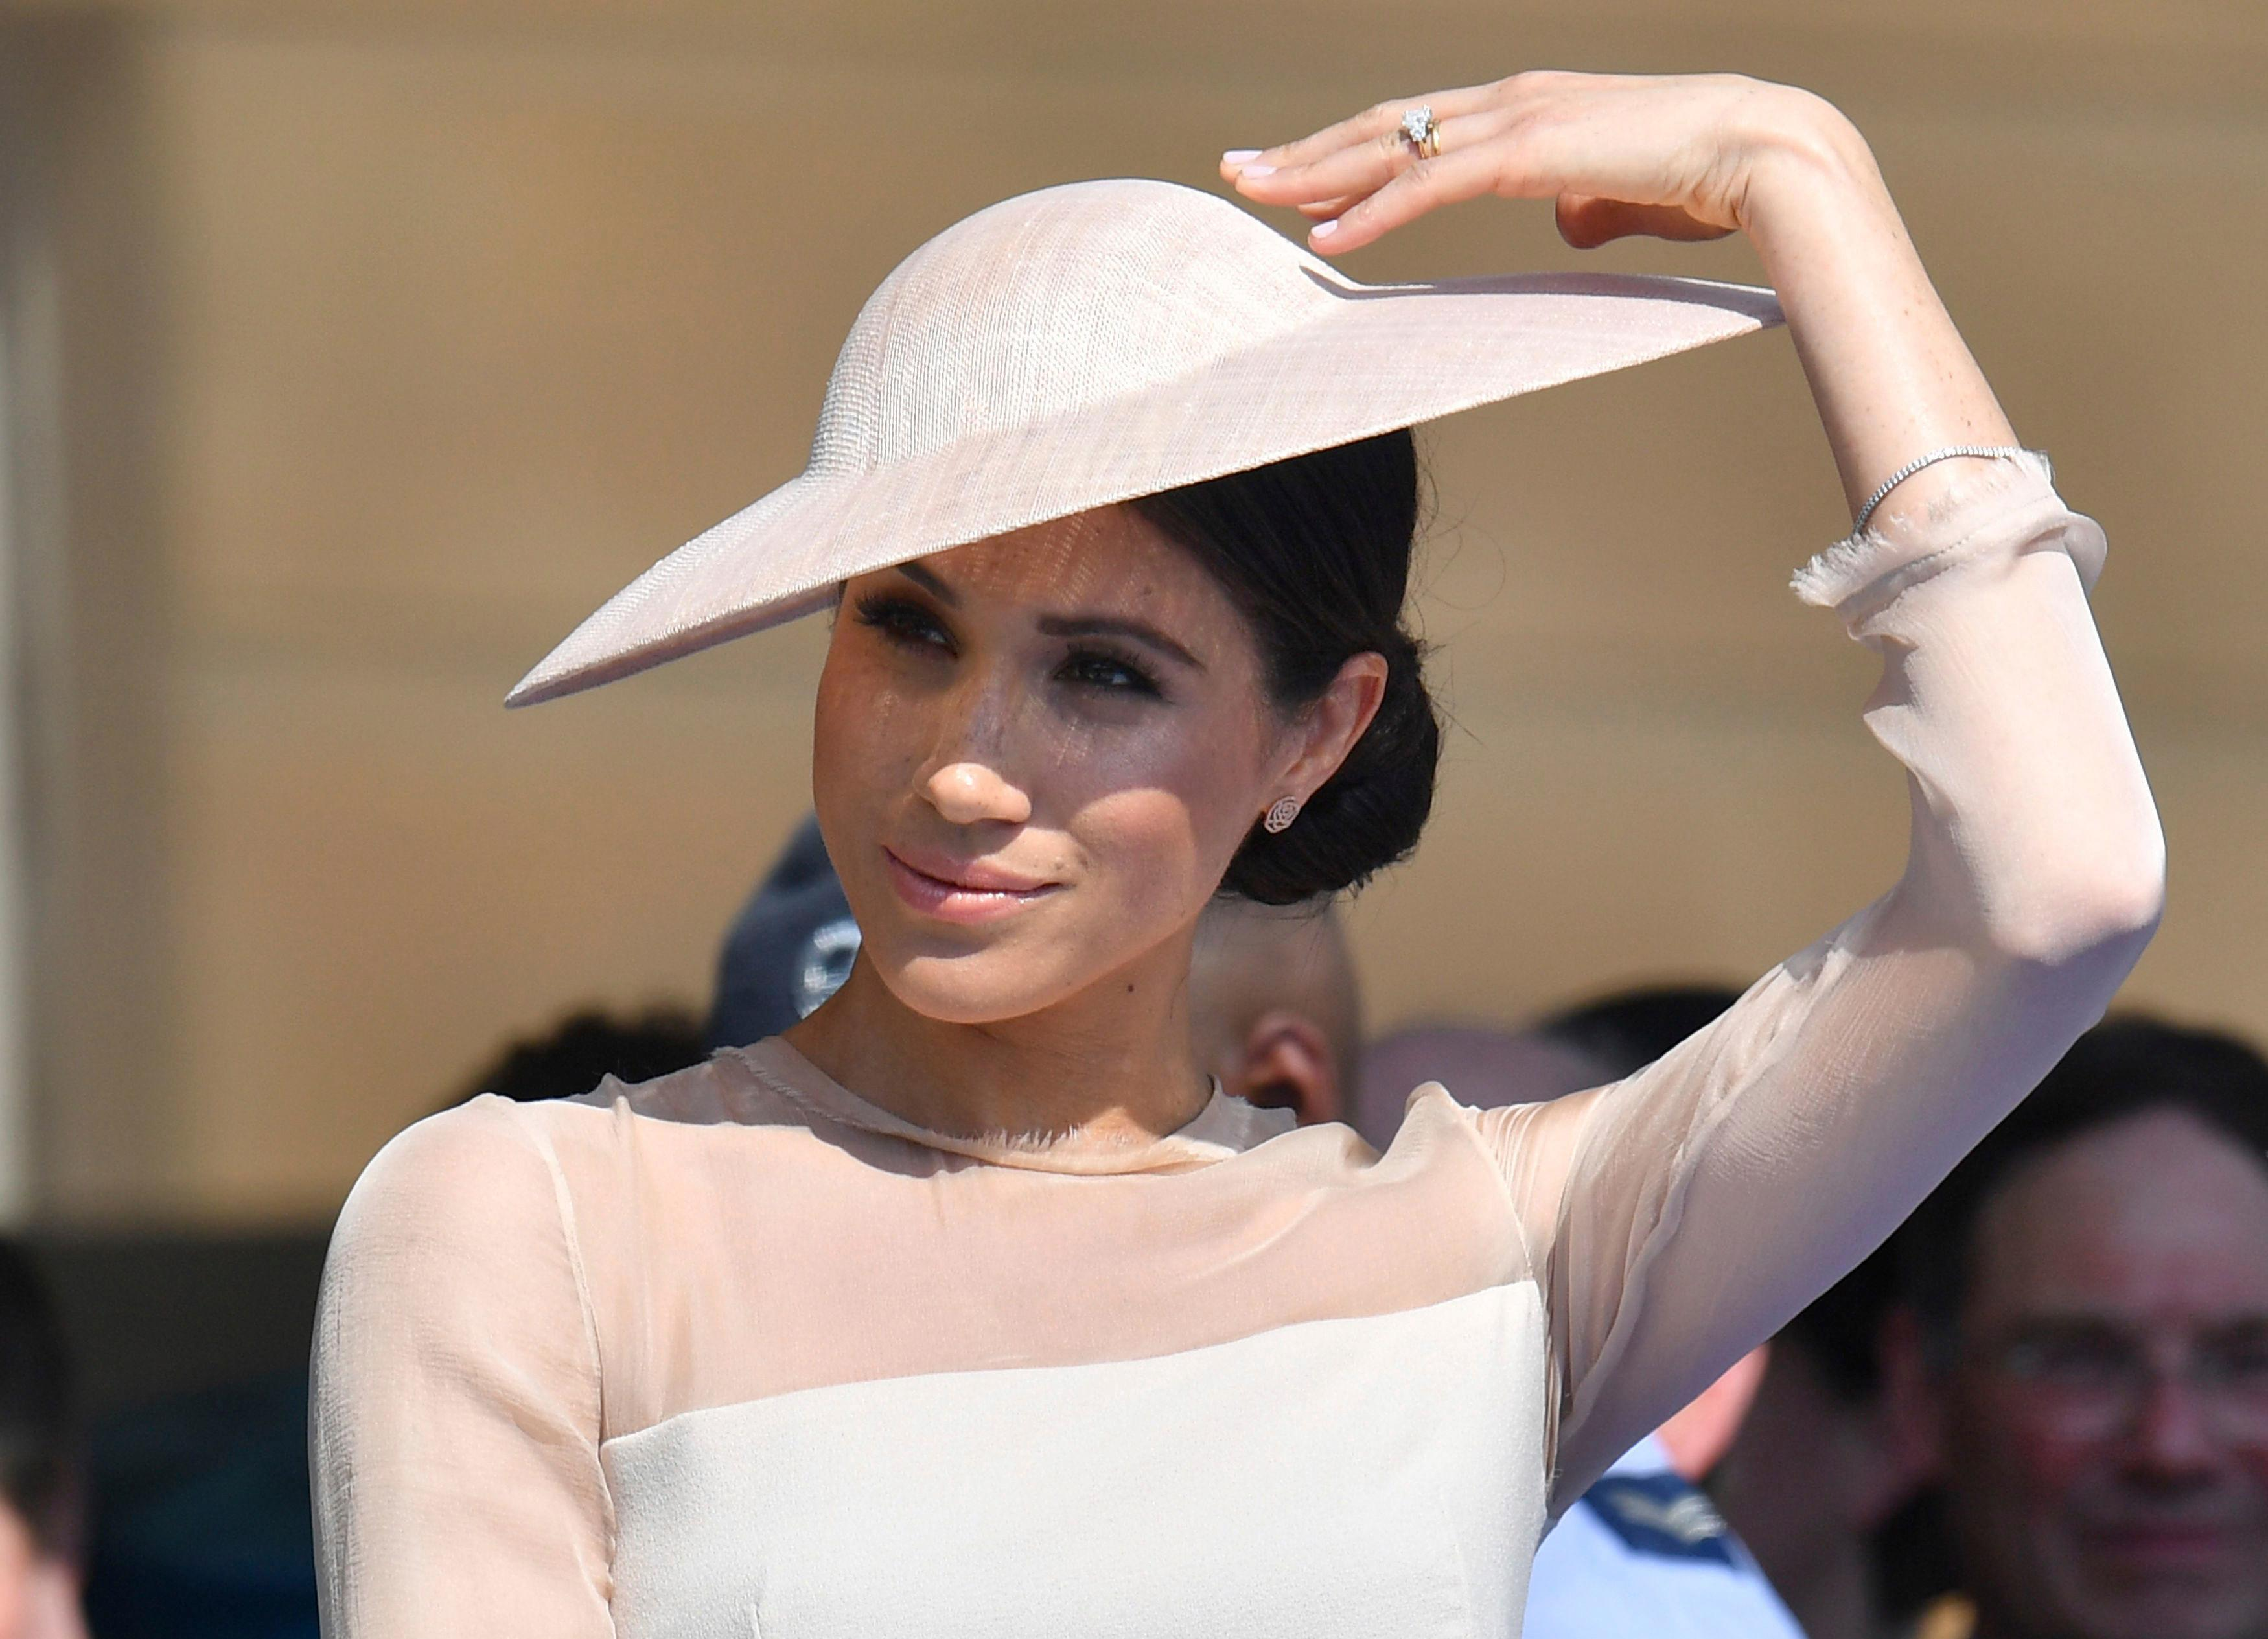 Meghan, the Duchess of Sussex gestures as she attends a garden party at Buckingham Palace in London, Tuesday, May 22, 2018, her first royal engagement a since her wedding to Prince Harry on Saturday. The event is part of the celebrations to mark the 70th birthday of Prince Charles. (Dominic Lipinski/Pool Photo via AP)